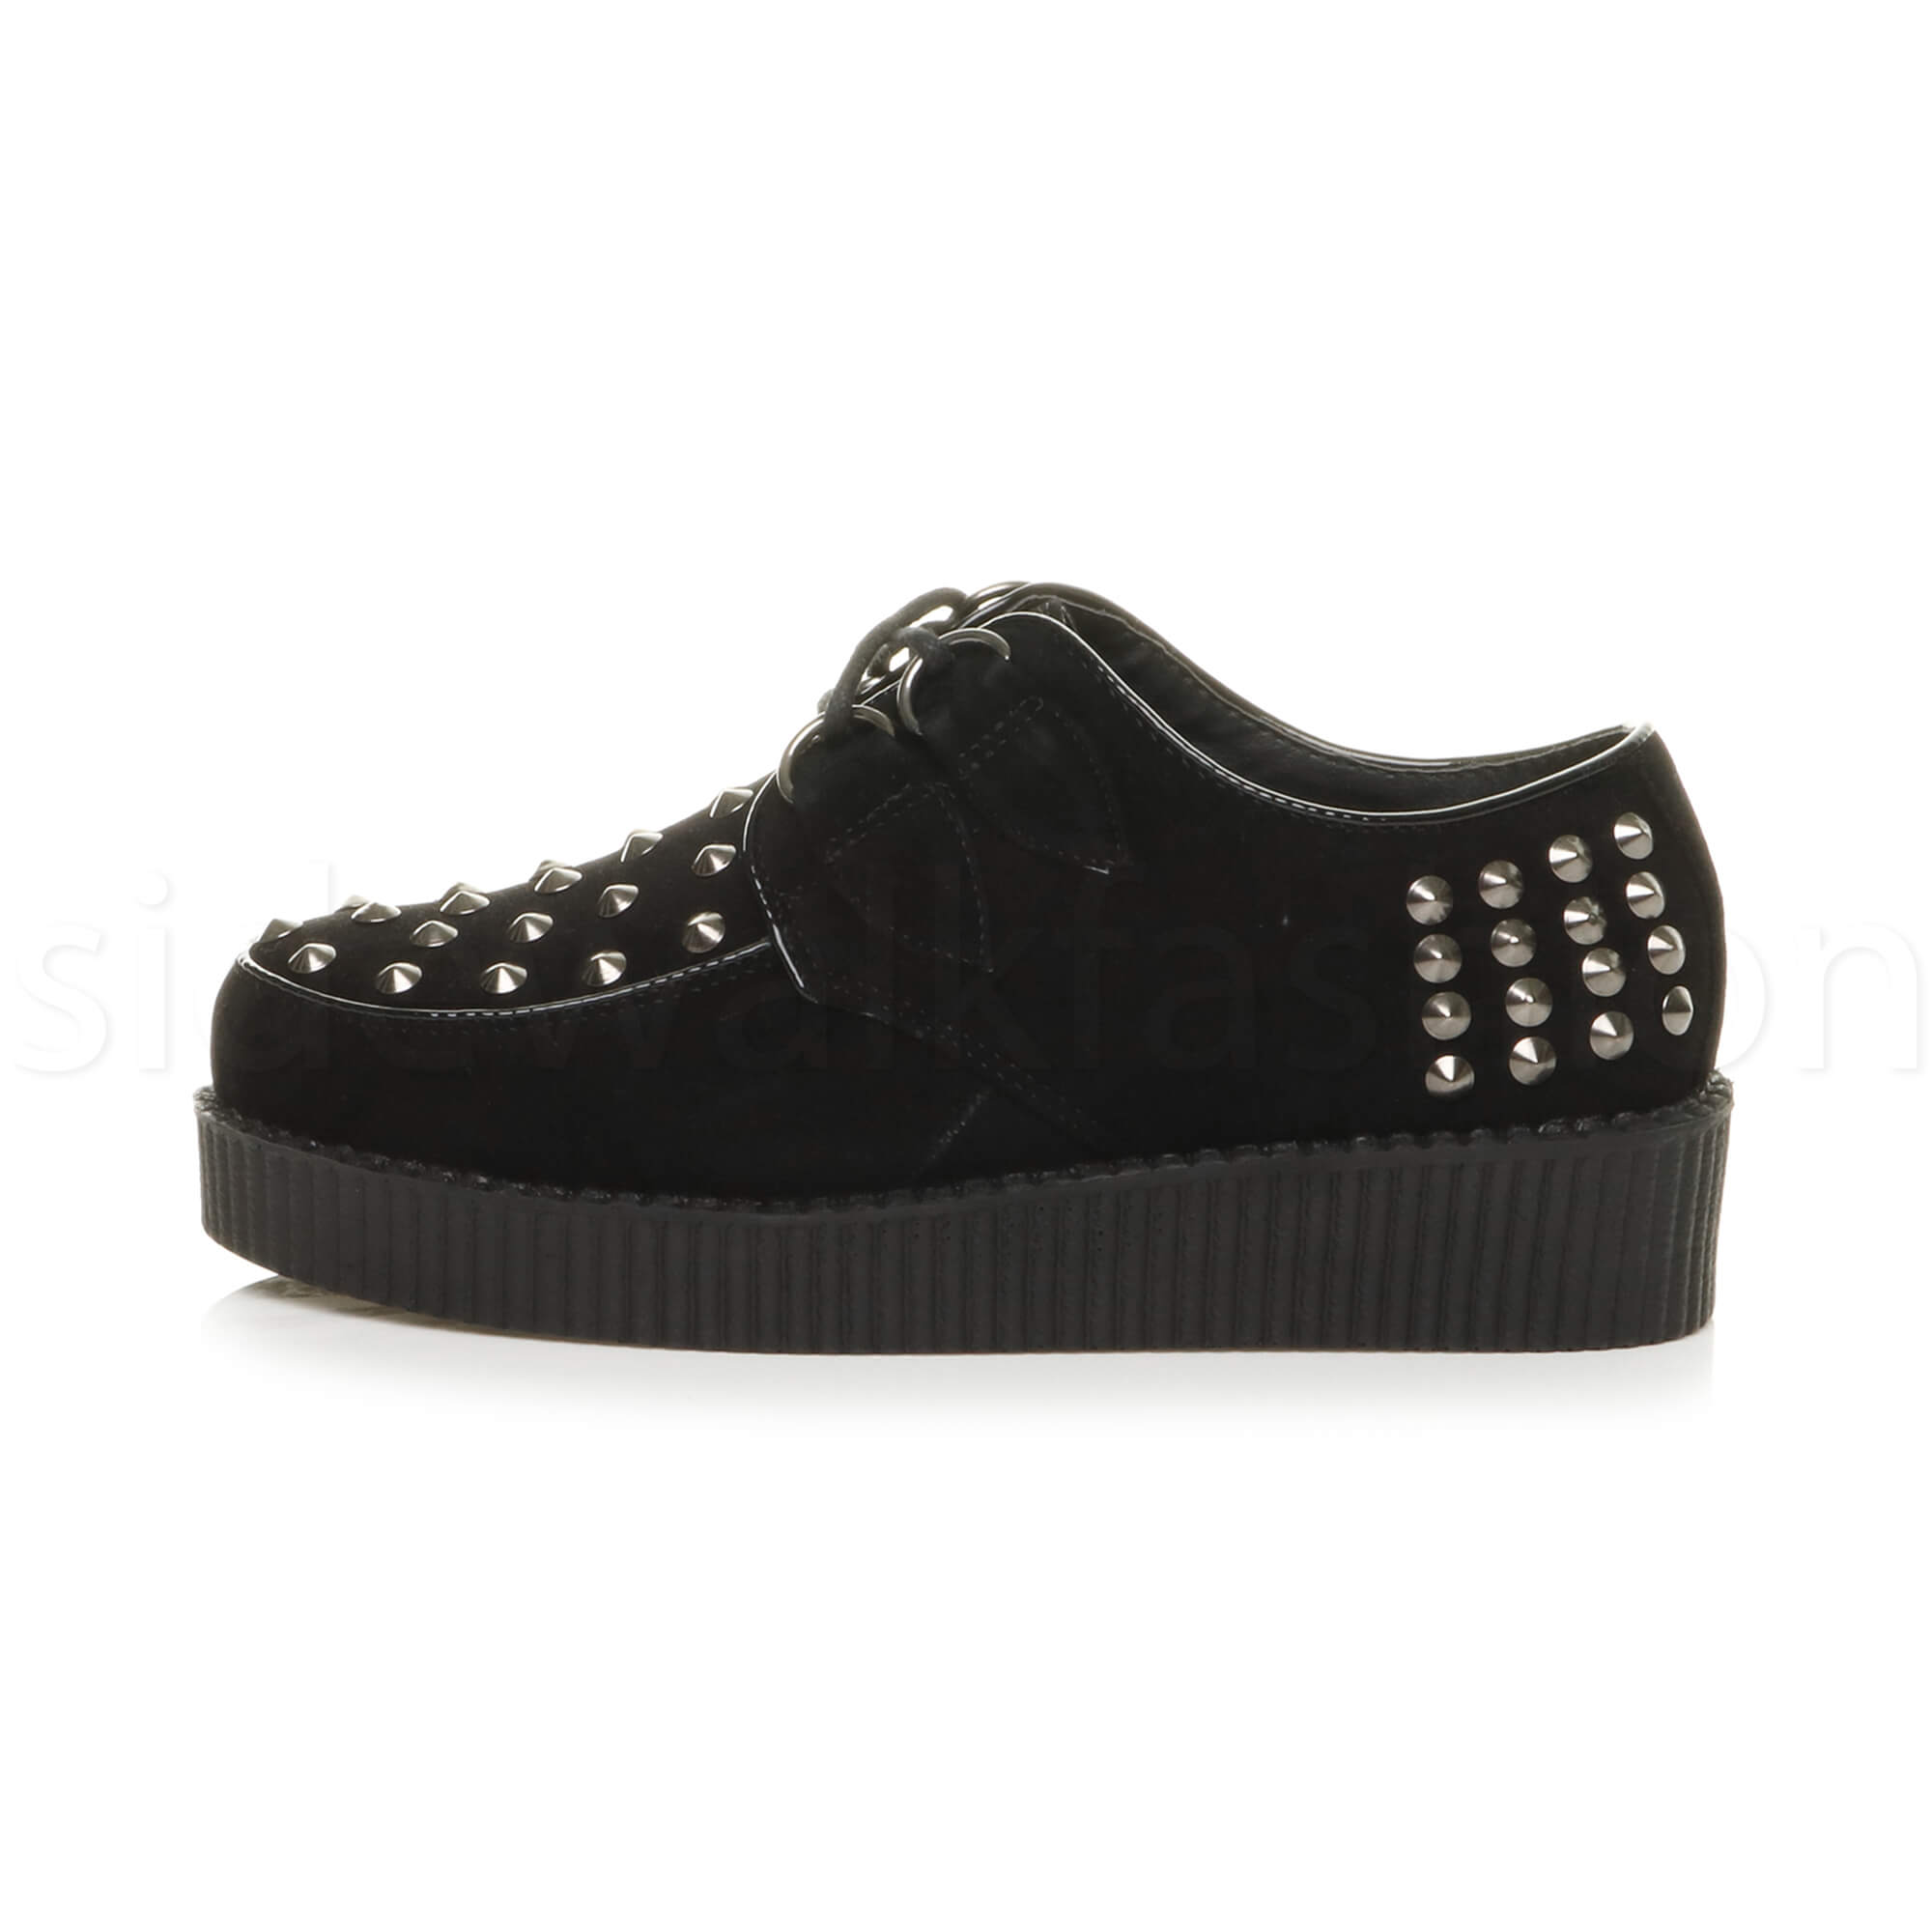 Womens-ladies-flat-platform-wedge-lace-up-goth-punk-creepers-shoes-boots-size miniatura 19